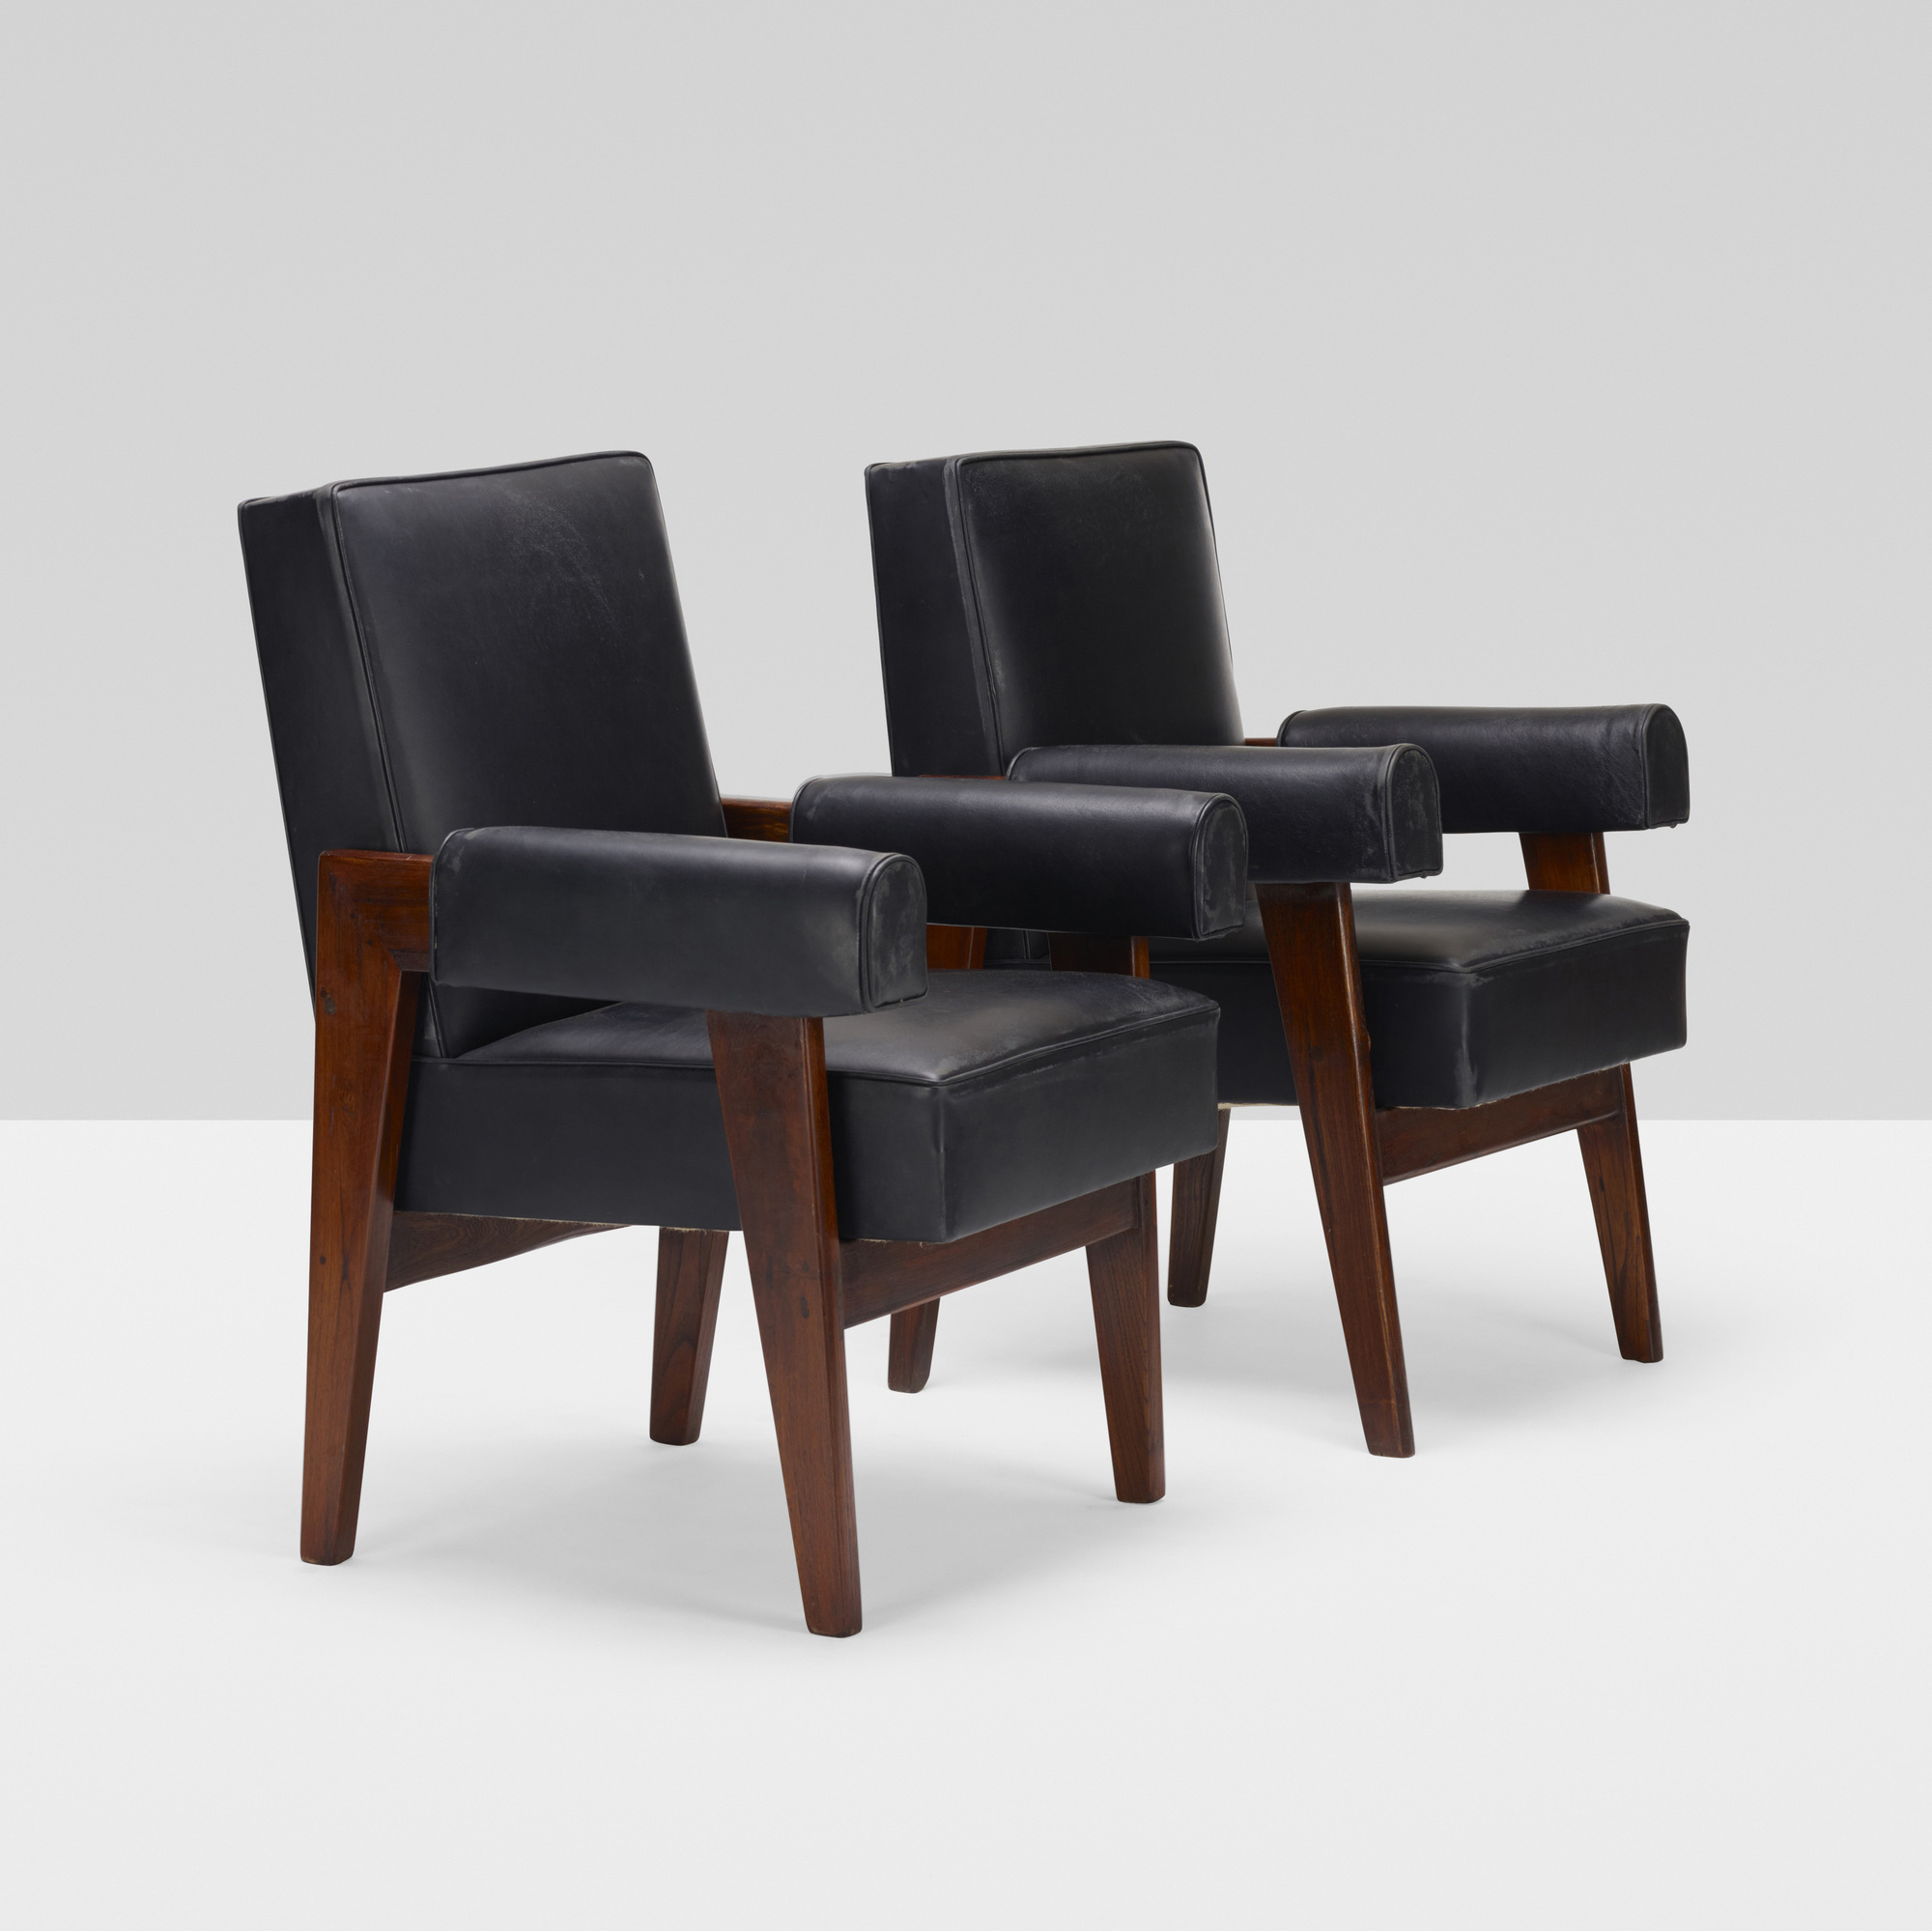 101: Le Corbusier and Pierre Jeanneret / pair of armchairs from the High Court, Chandigarh (2 of 2)